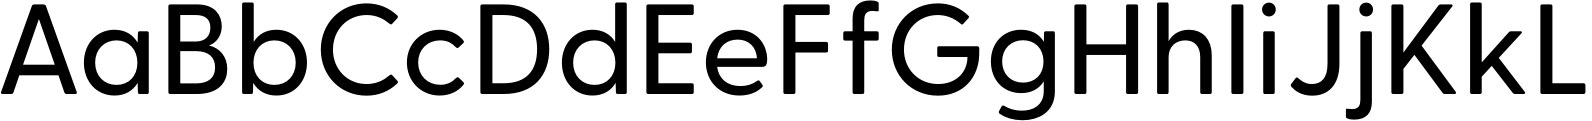 Greycliff CF Medium Font